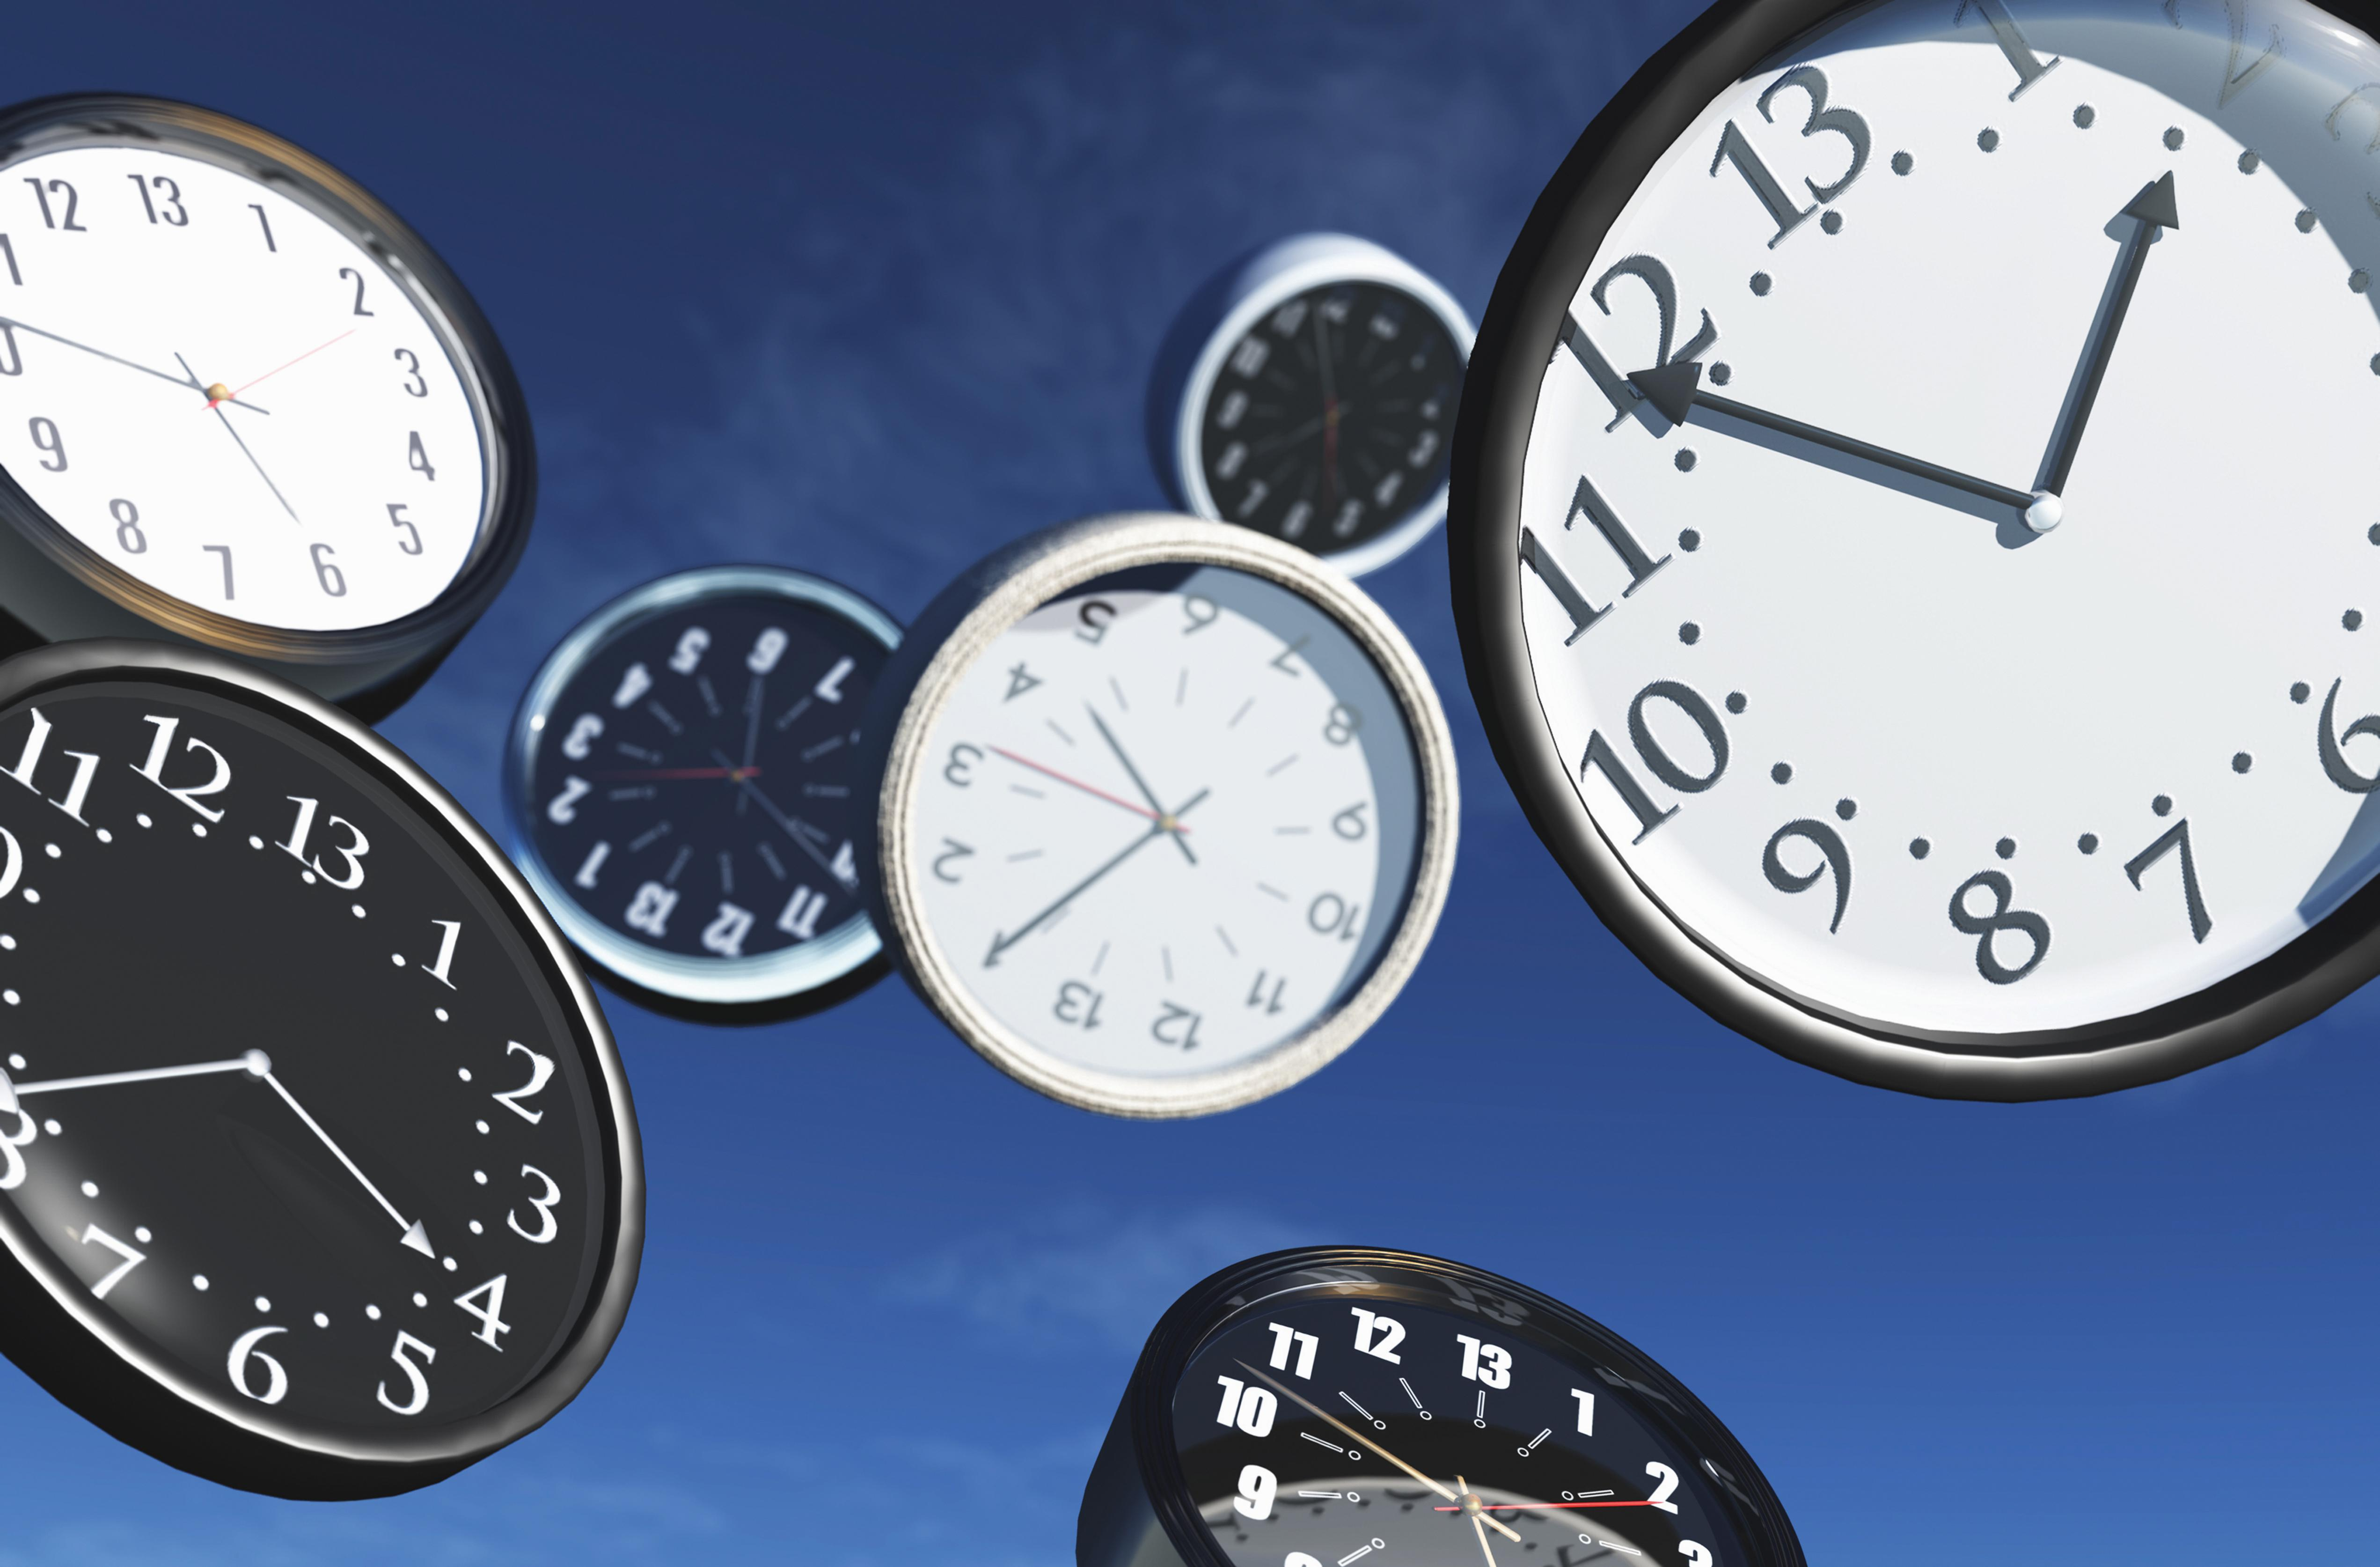 Variety of flying clocks with different time